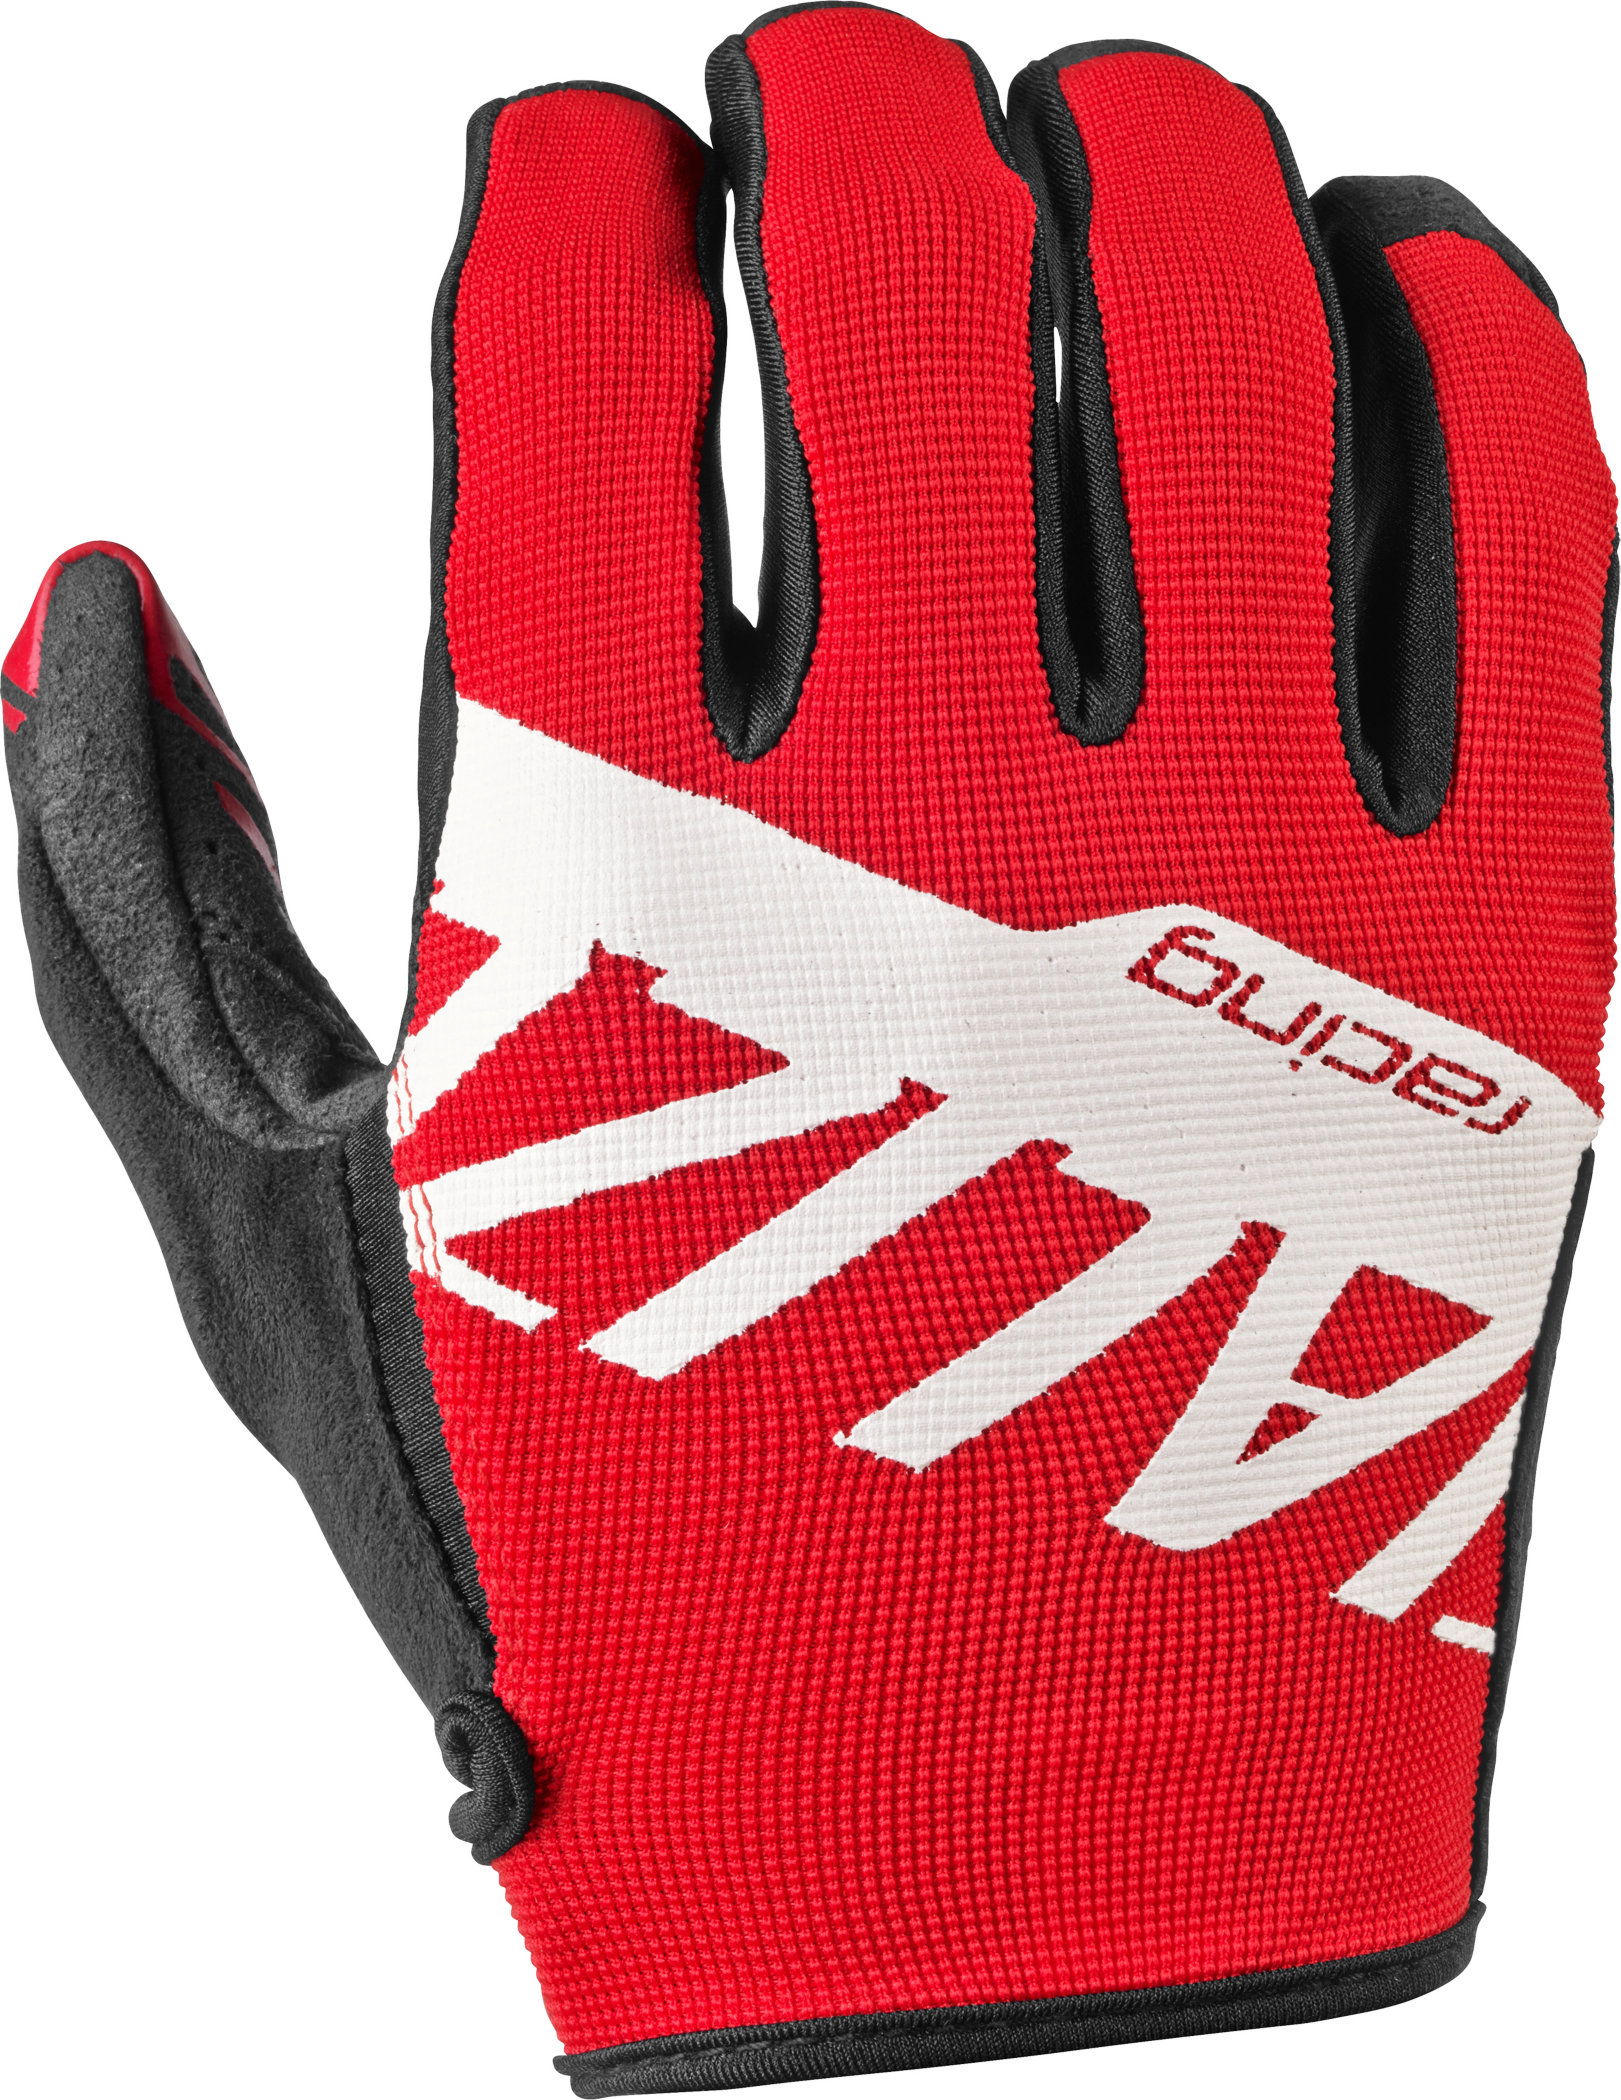 SPECIALIZED LODOWN GLOVE RED/WHT TEAM L - Pulsschlag Bike+Sport